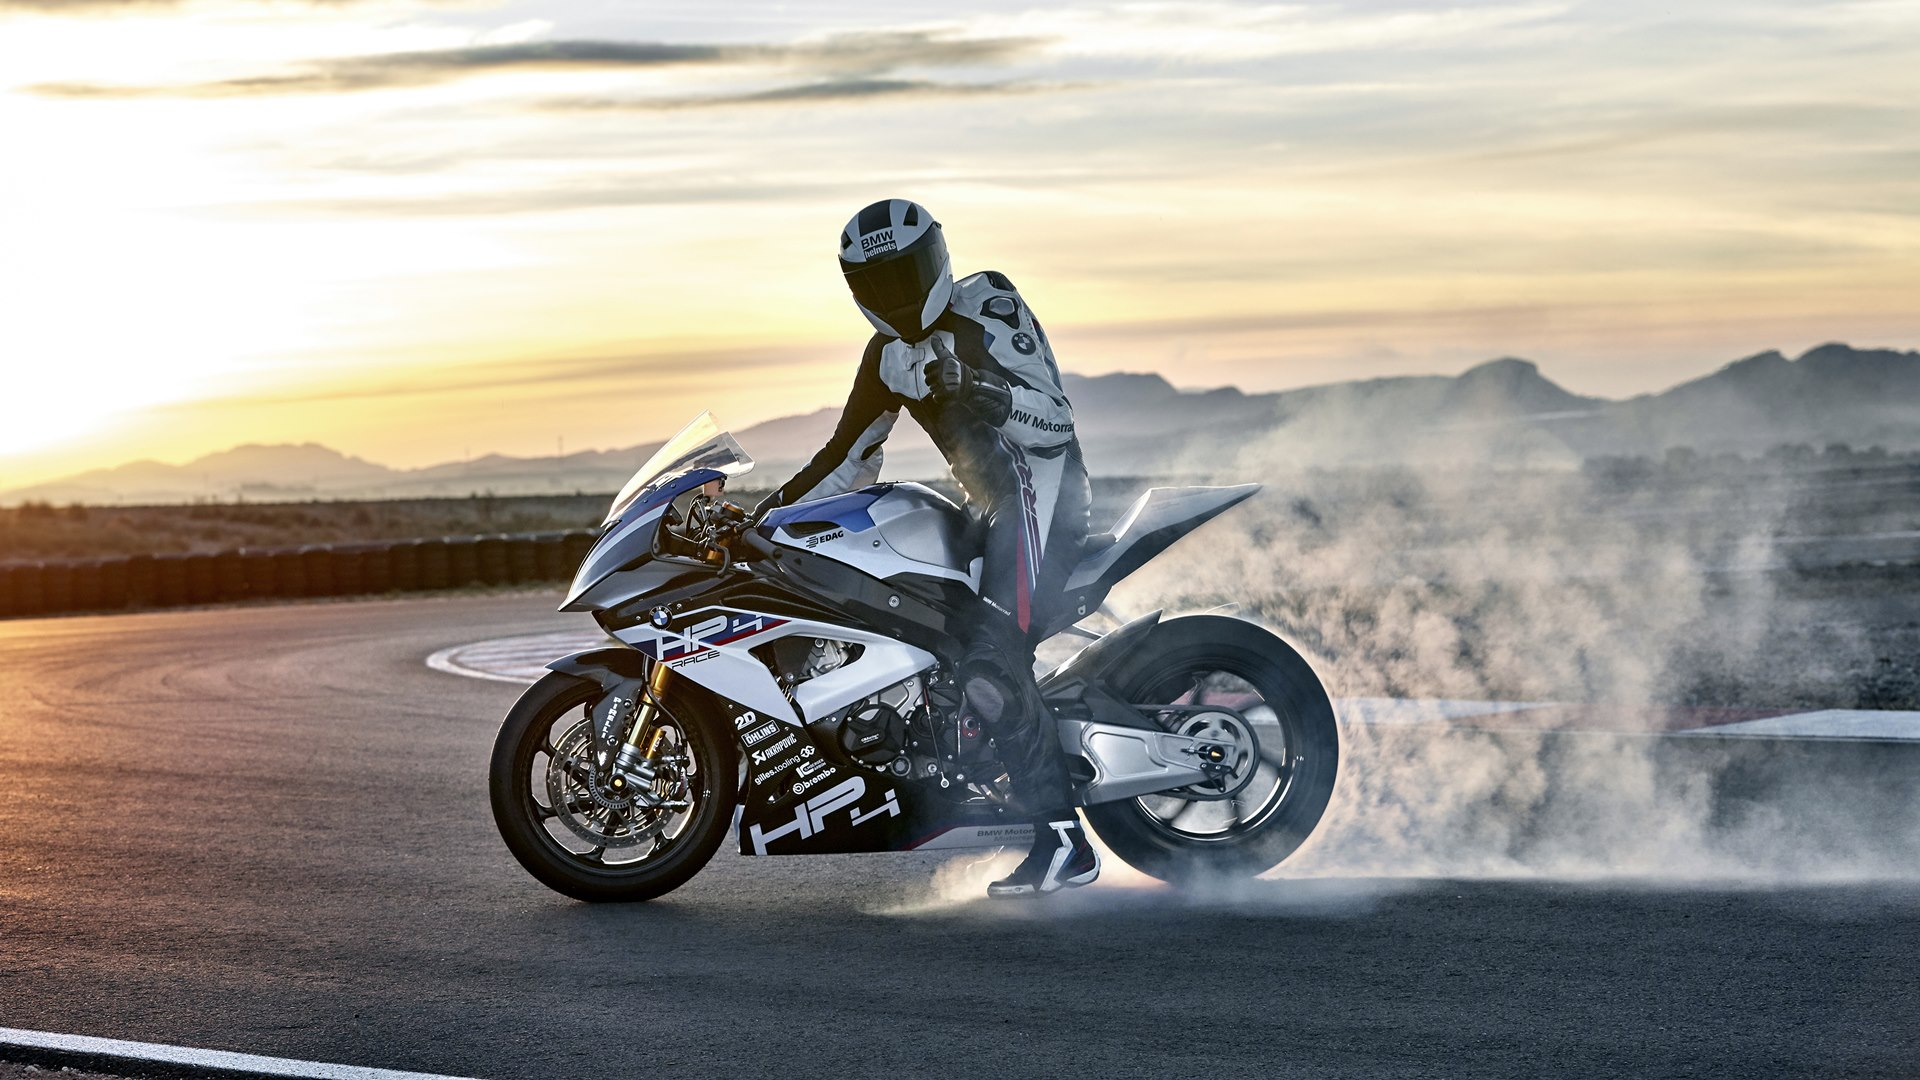 BMW HP4 Race HD wallpaper IAMABIKER   Everything Motorcycle 1920x1080